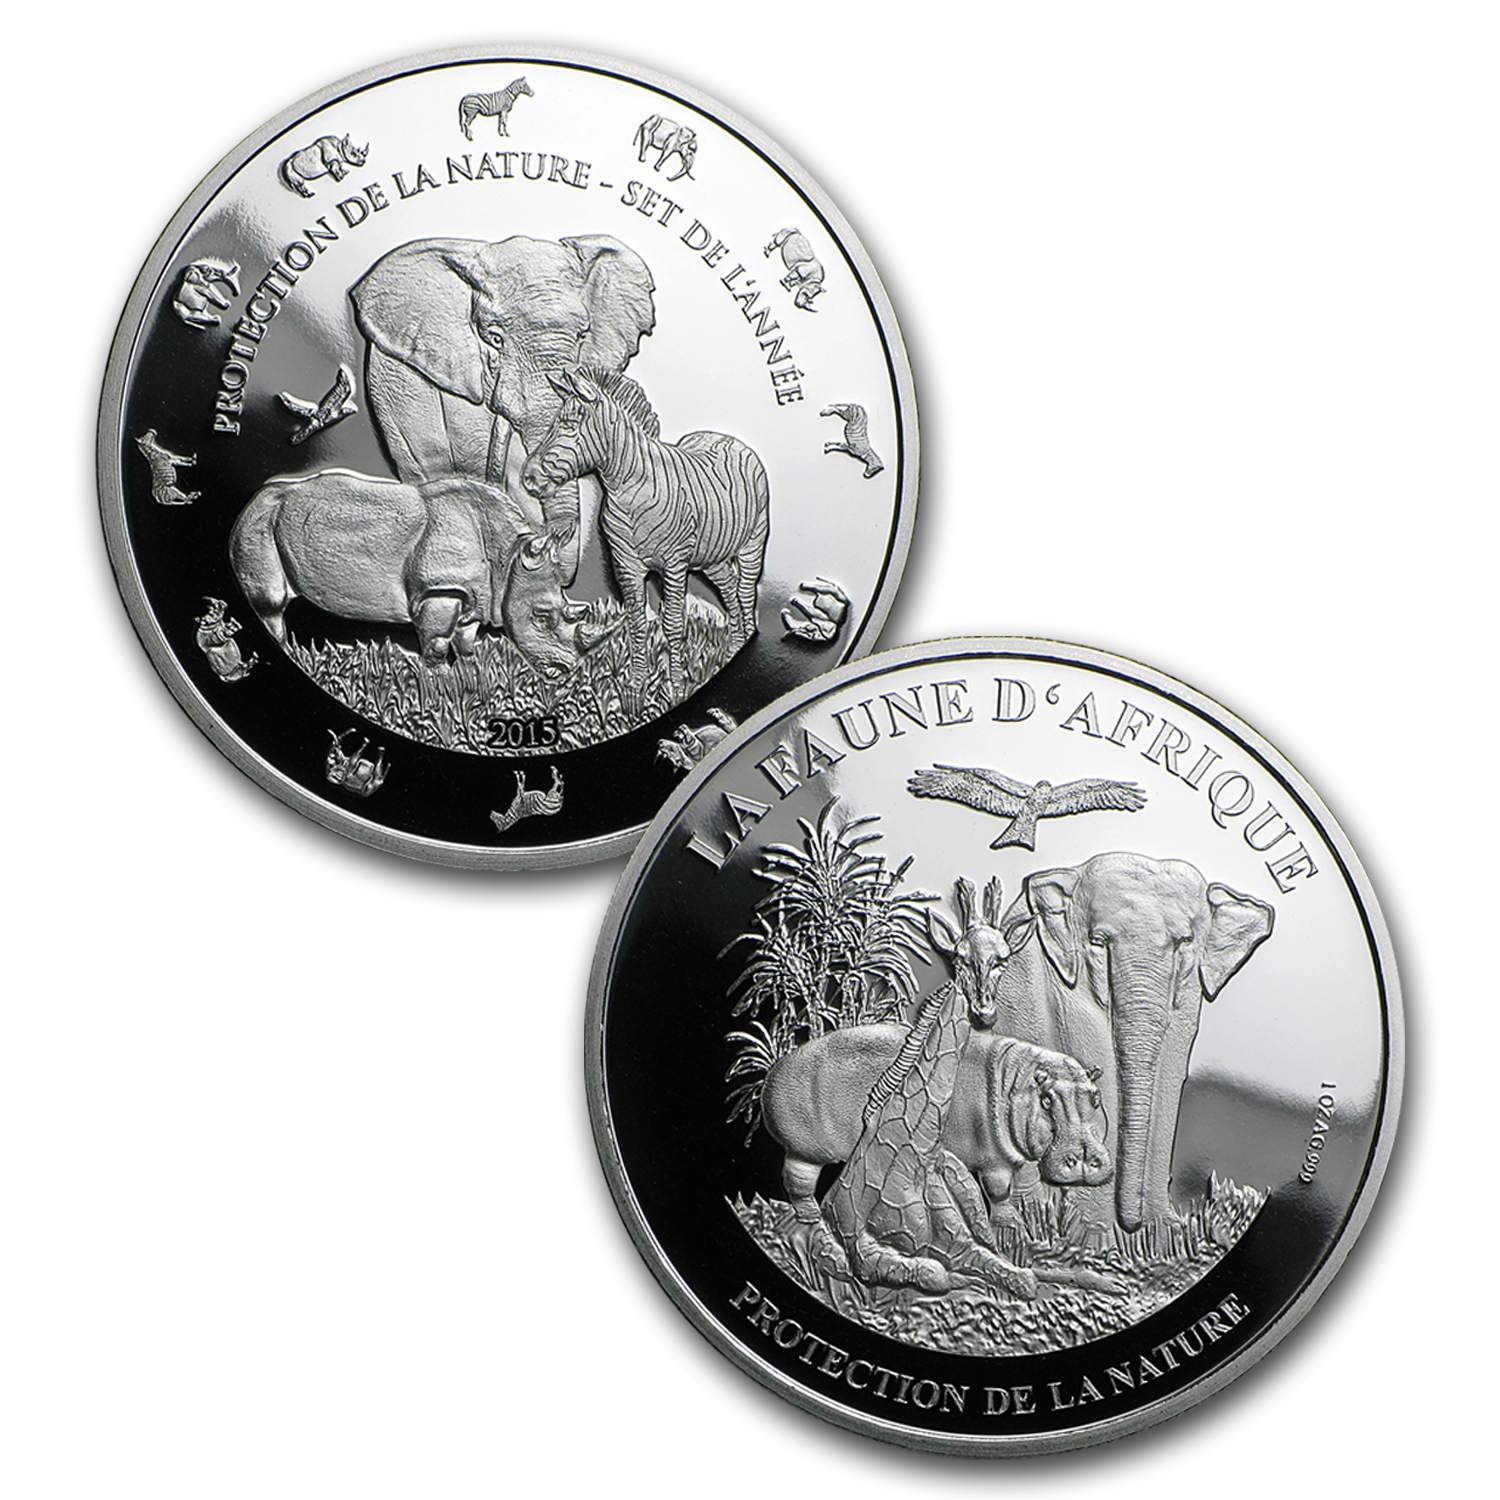 2015 Benin 1 oz Silver Protection de la Nature 4-Piece Set